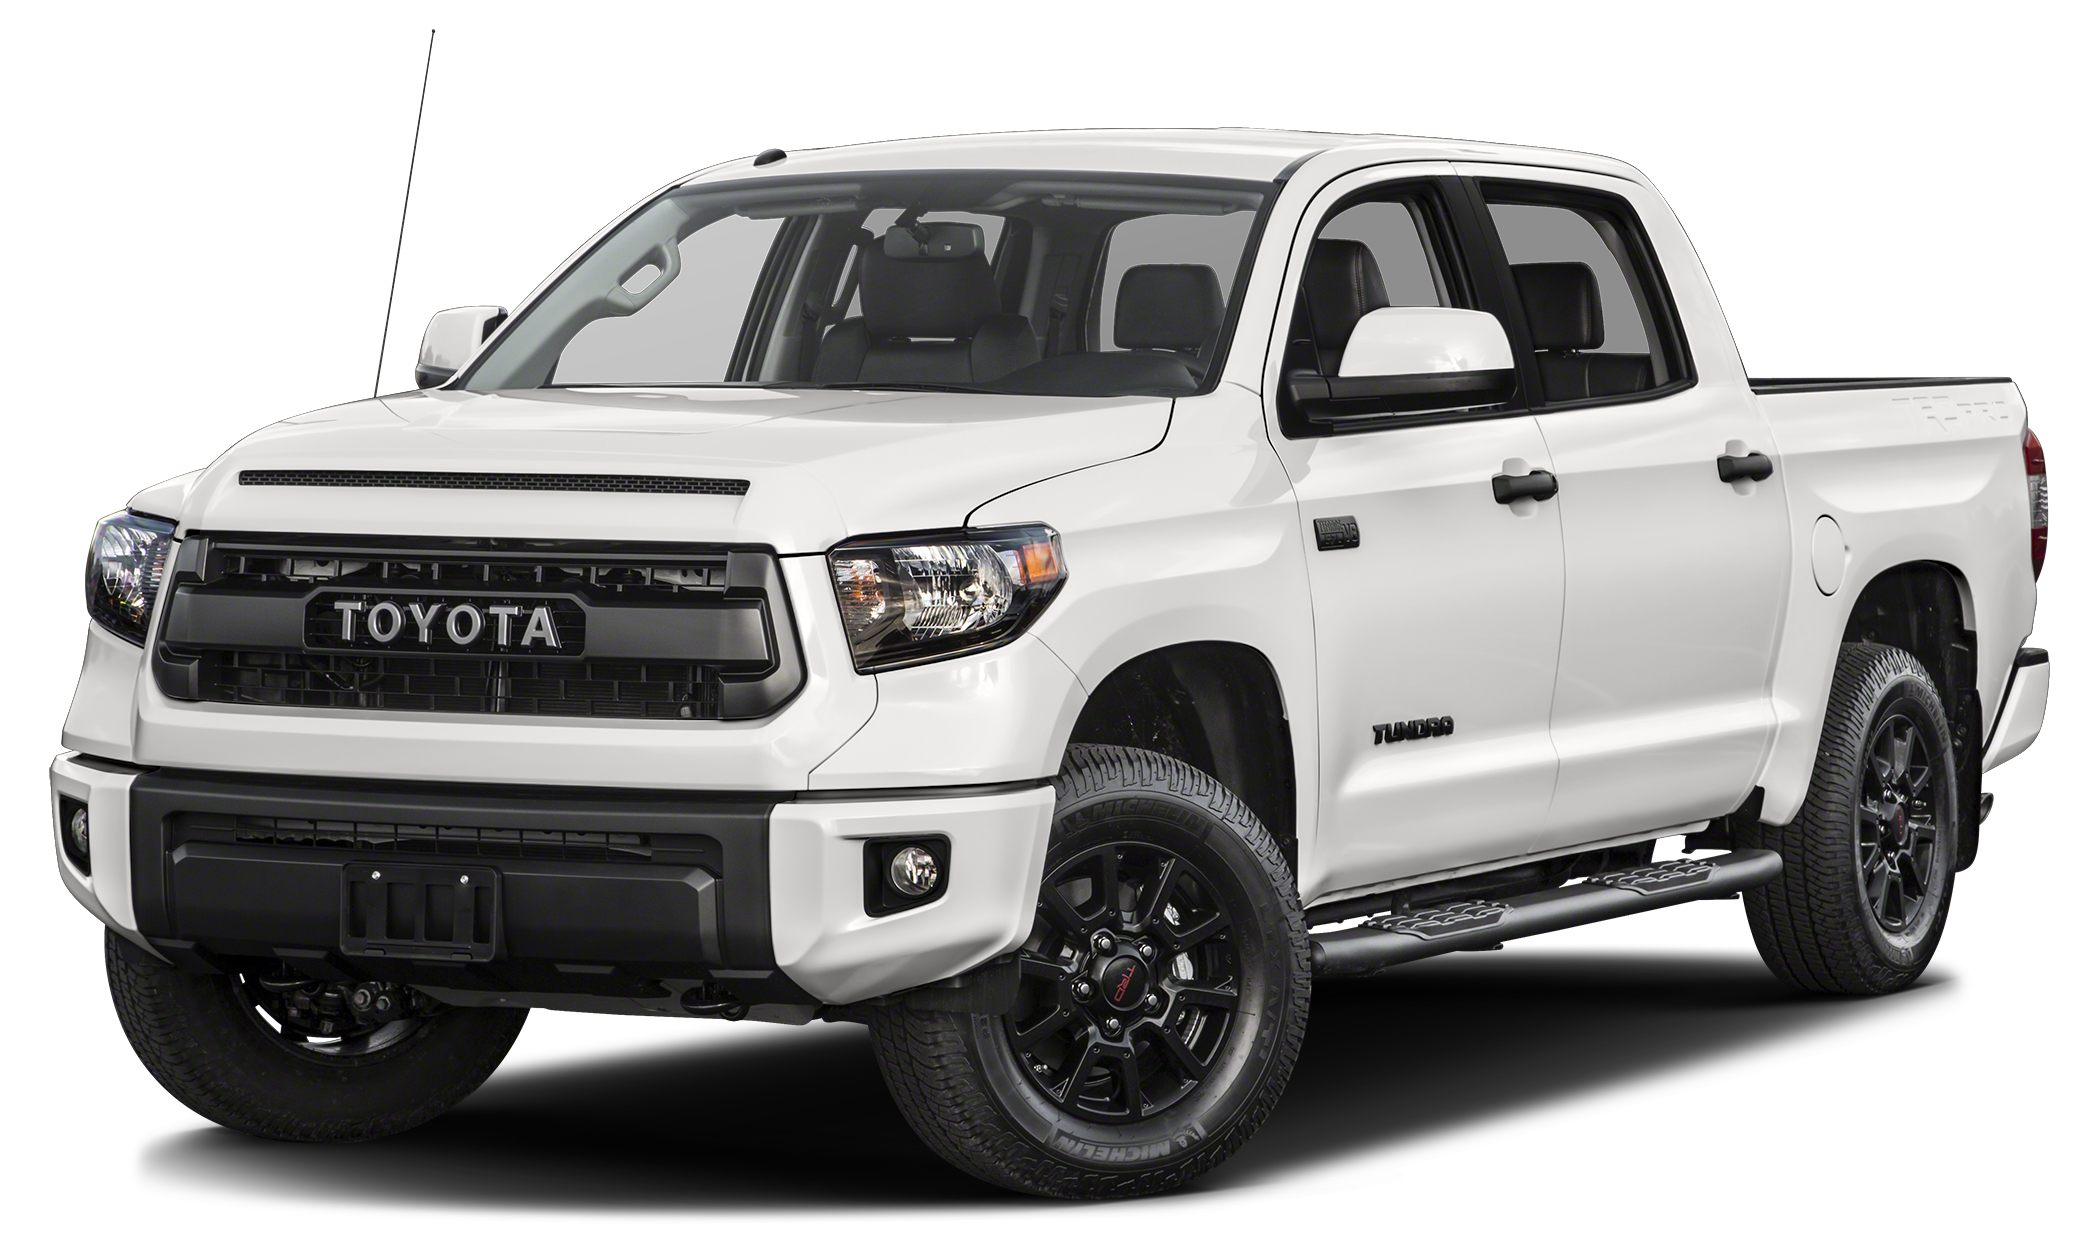 2016 Toyota Tundra TRD Pro CARFAX 1-Owner Excellent Condition LOW MILES - 1399 TRD Pro trim S